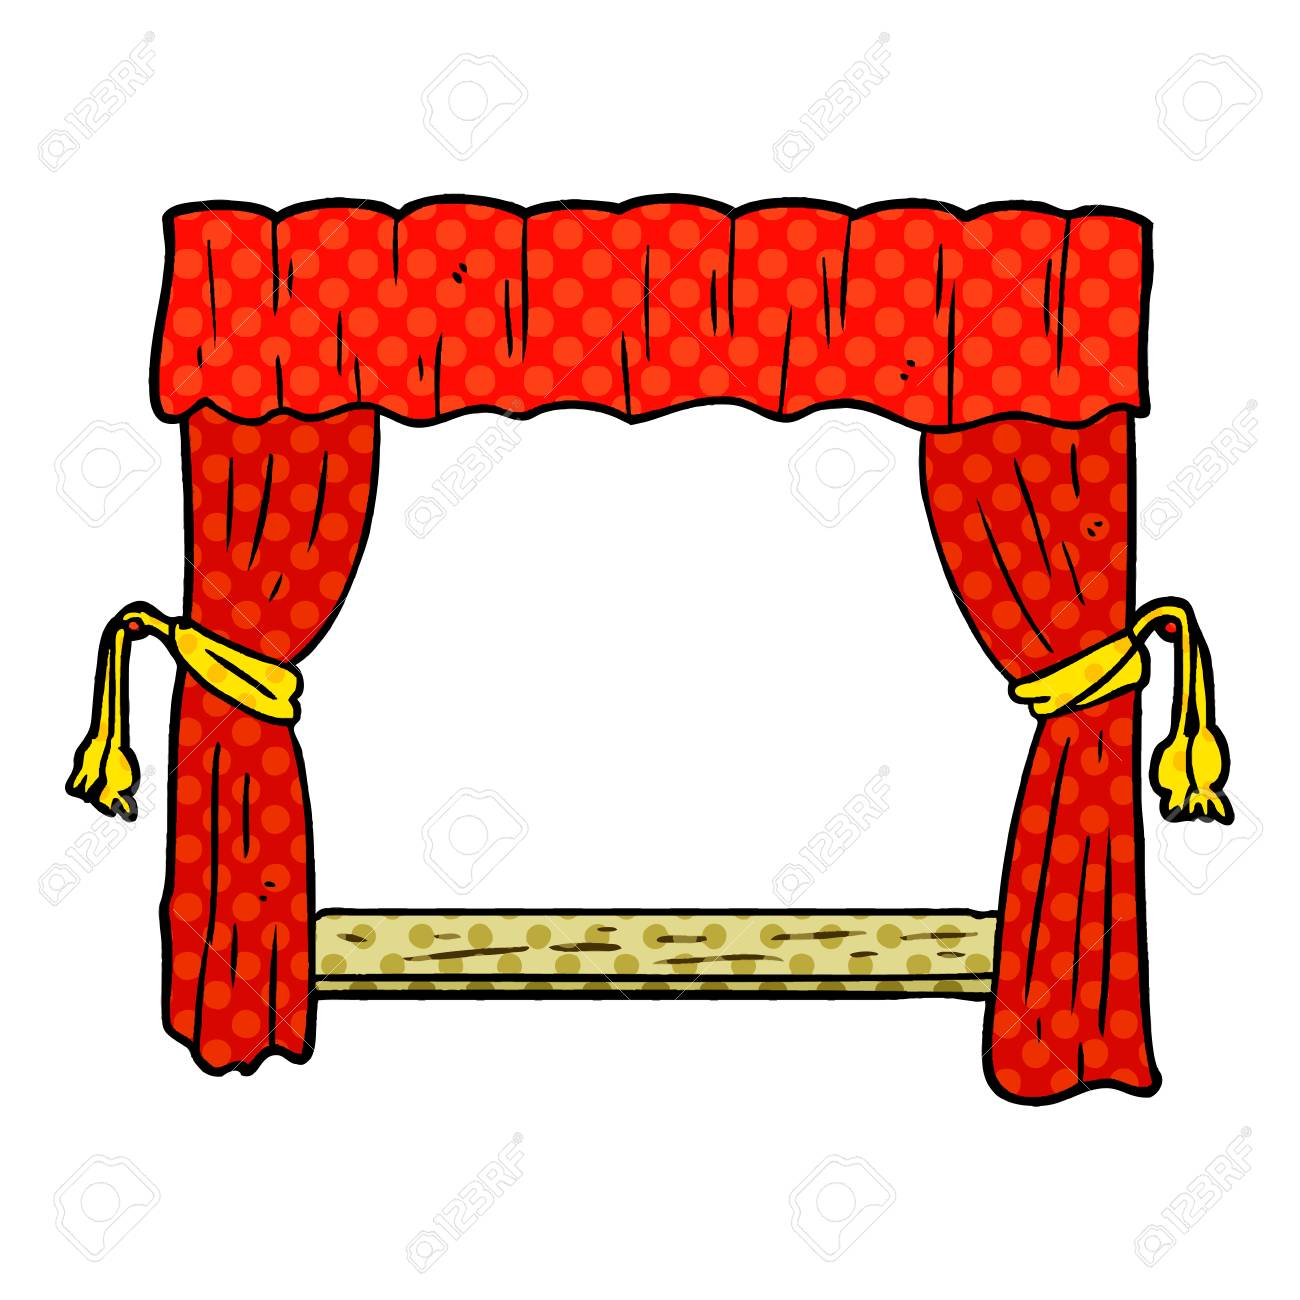 Cartoon Curtains Opening Onto Stage Stock Vector